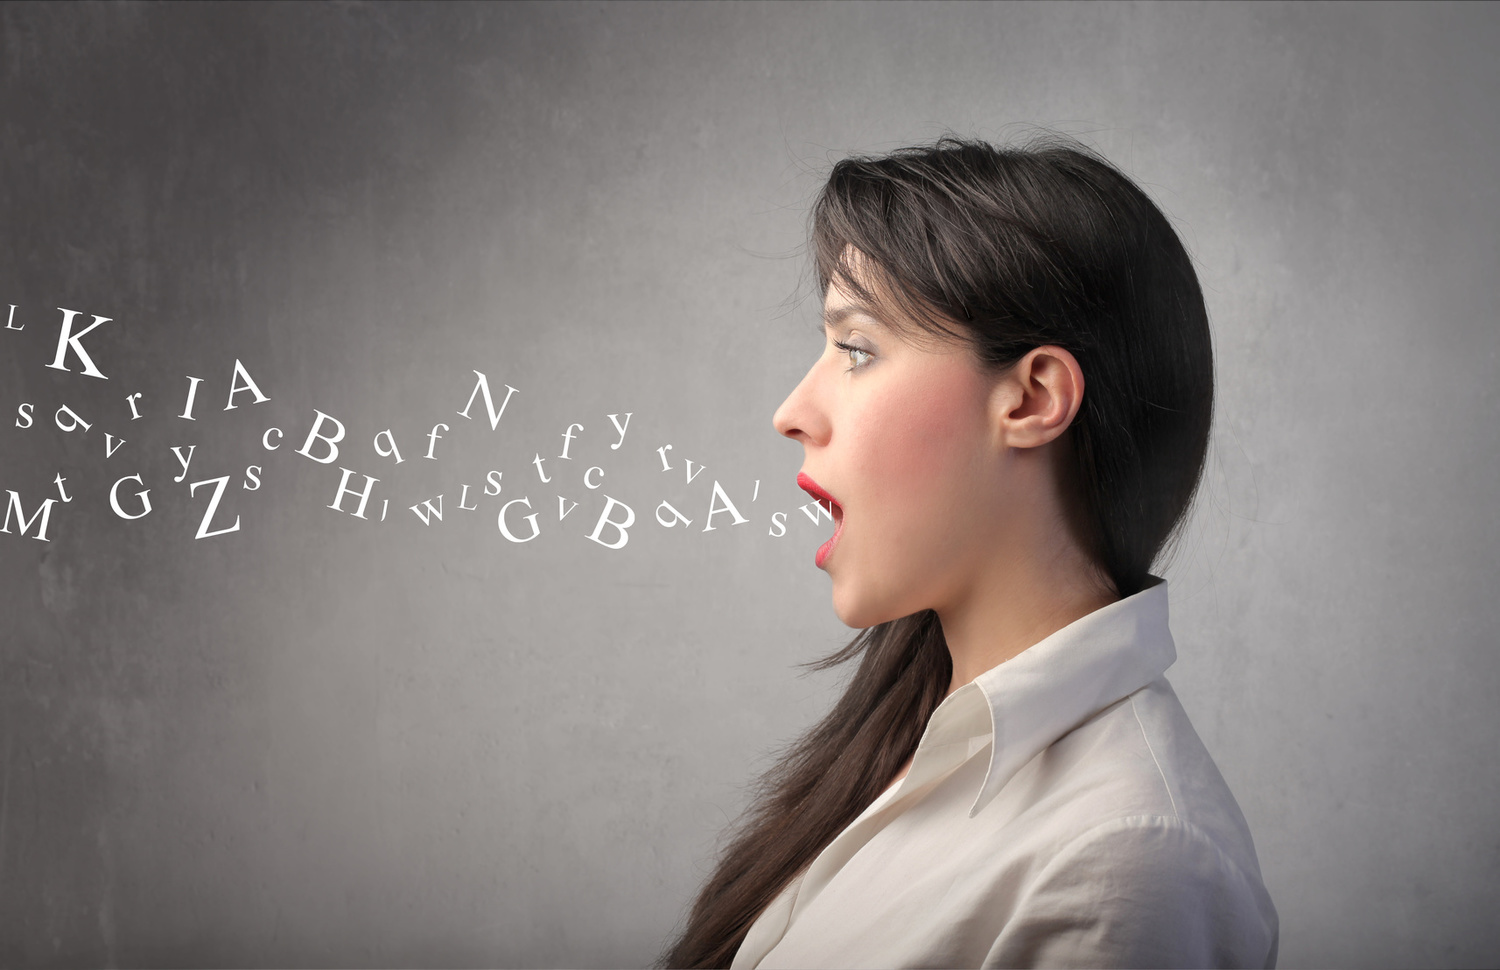 Is having a 'foreign' accent in English a bad thing?